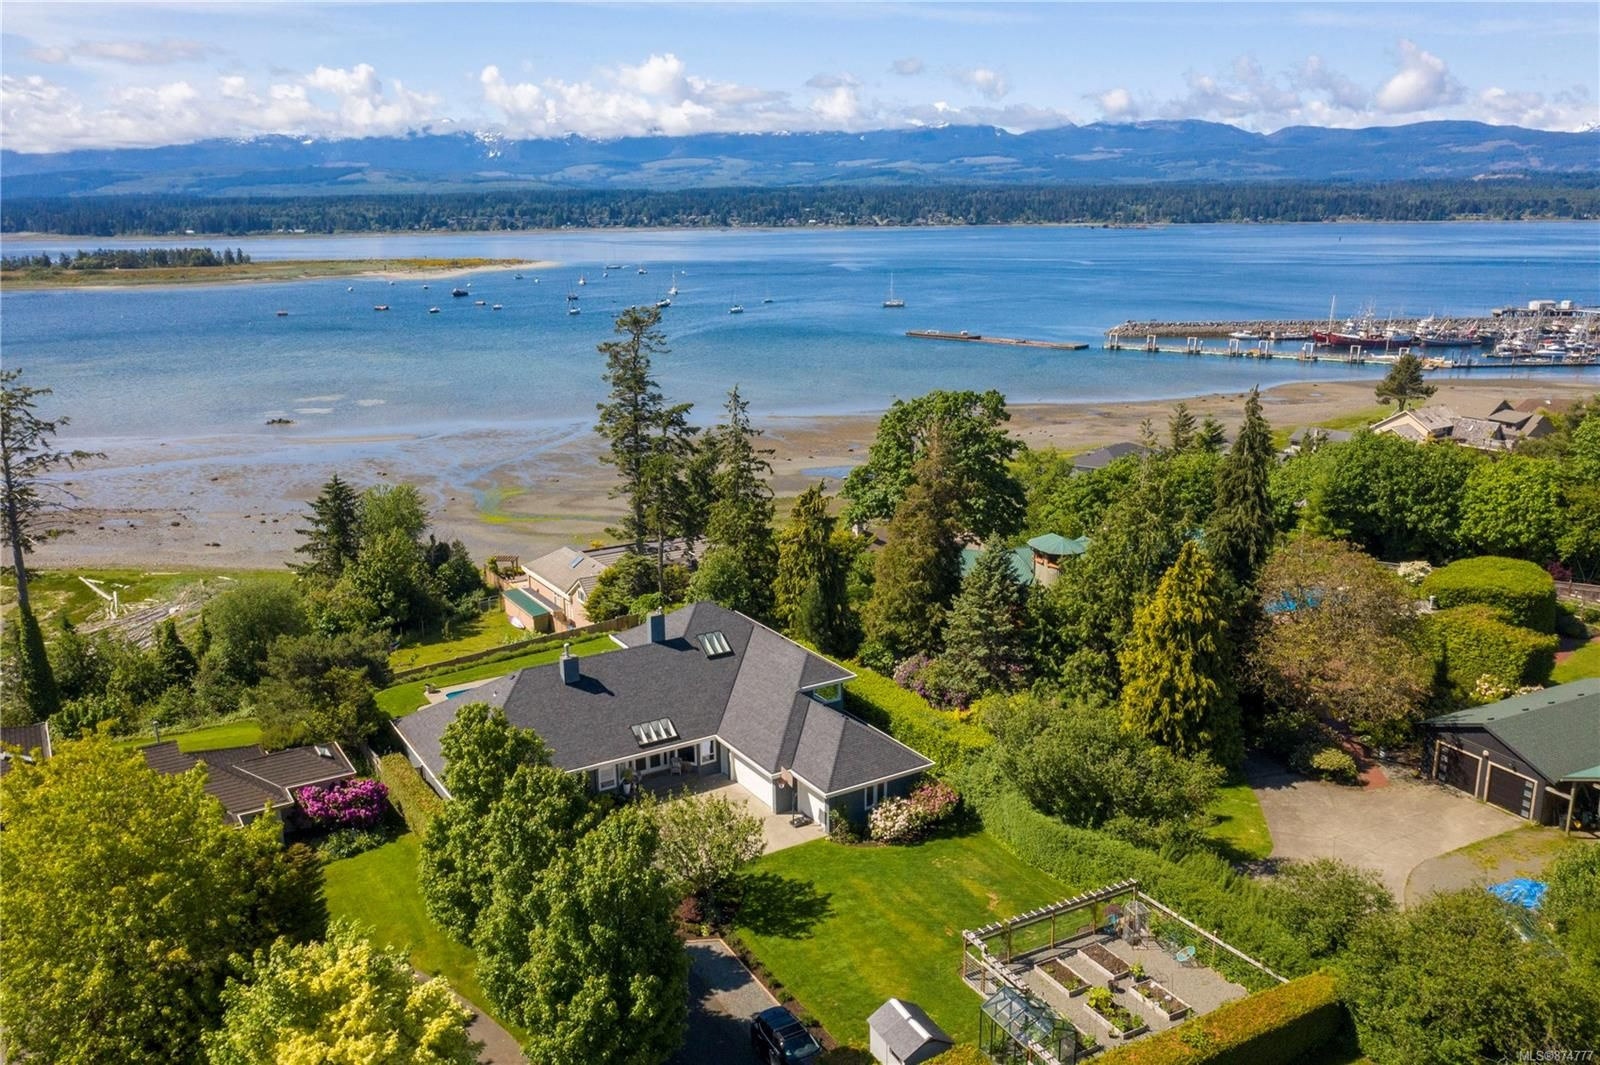 Main Photo: 1633 Beaufort Ave in : CV Comox (Town of) House for sale (Comox Valley)  : MLS®# 874777